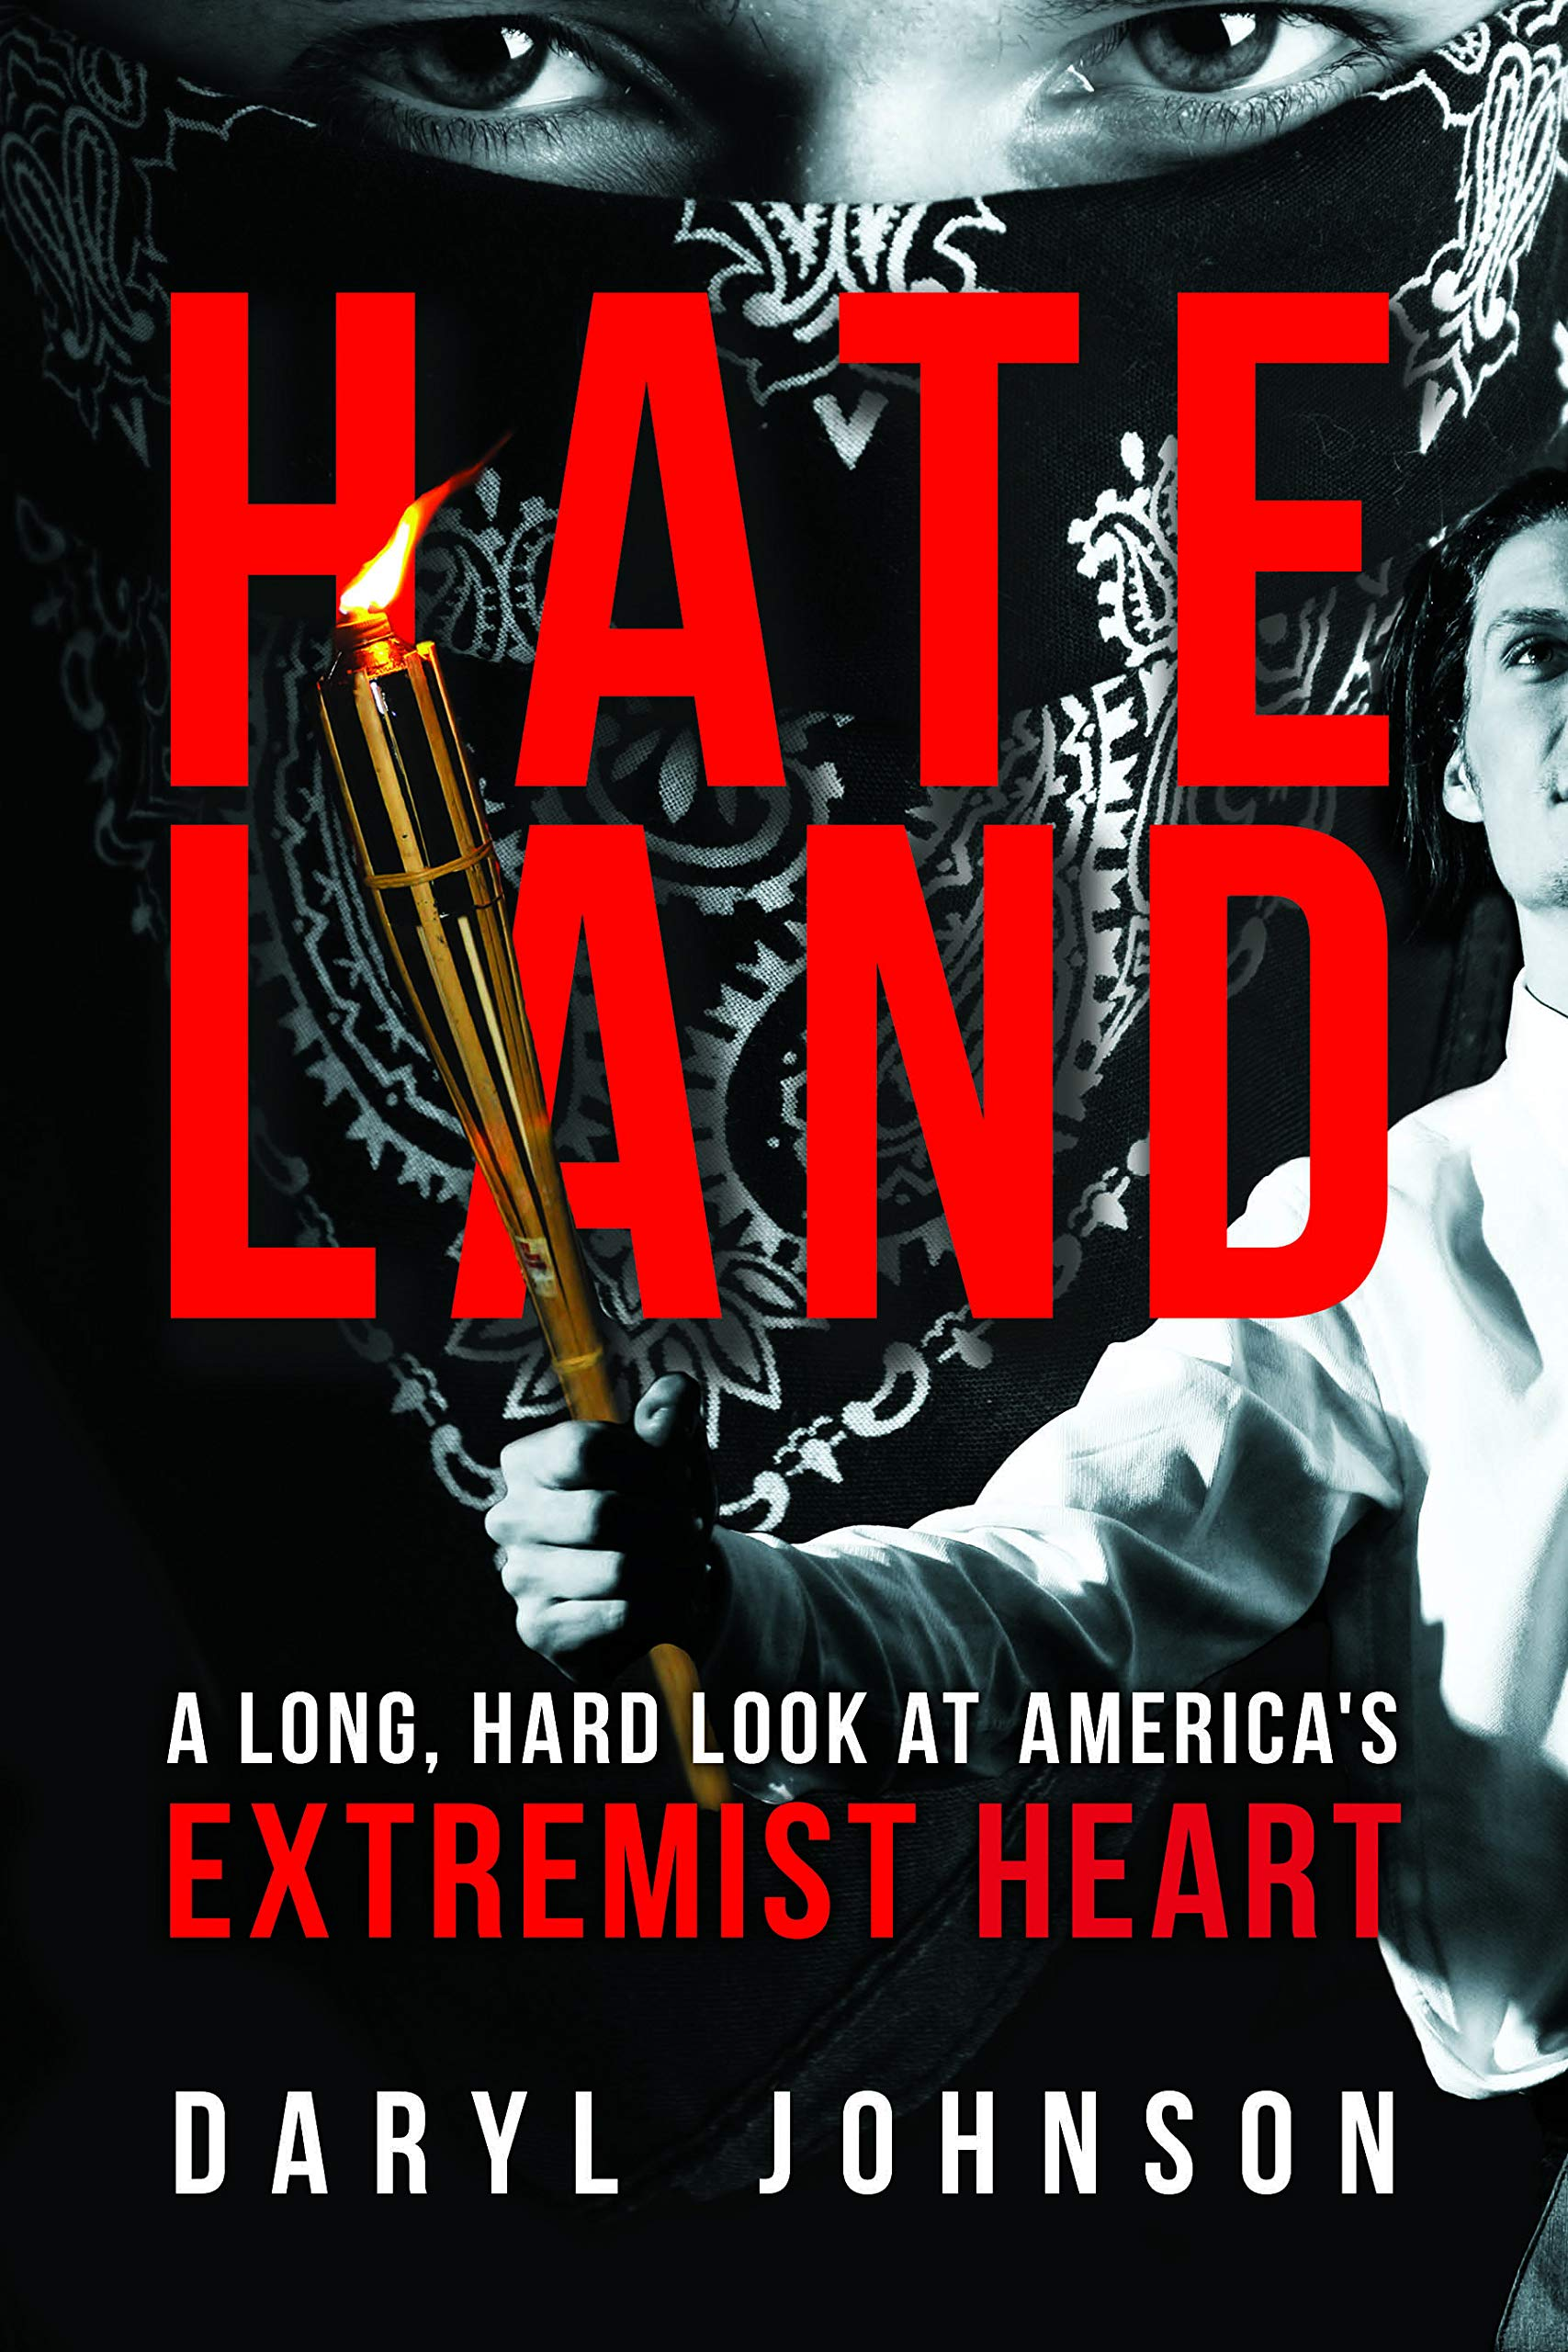 Hate Land: A Long, Hard Look at America's Extremist Heart By Daryl Johnson Prometheus Books, 2019